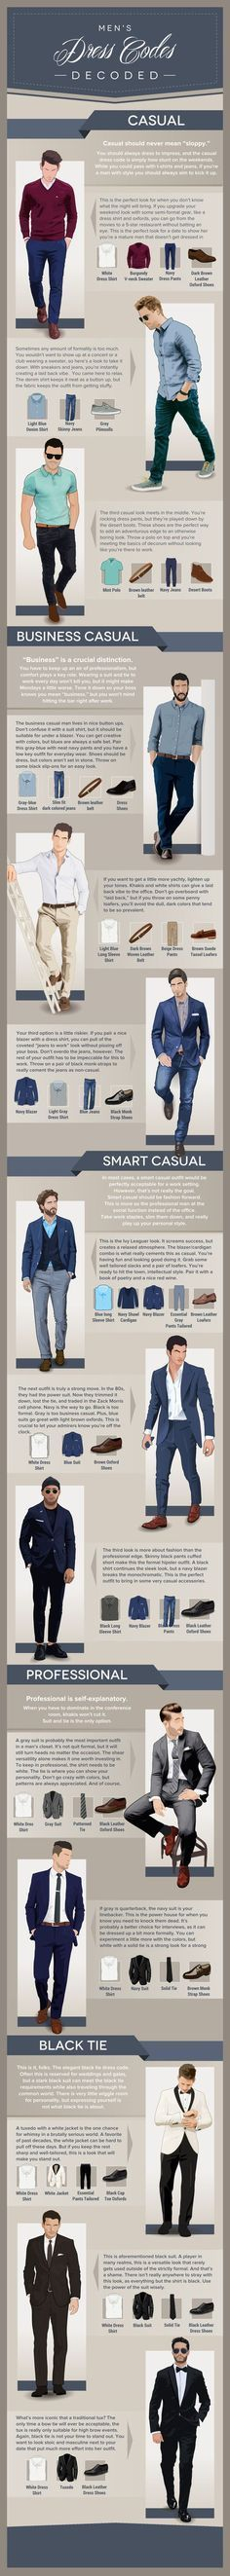 Men's Dress Codes Infographic Mens fashion Infographic